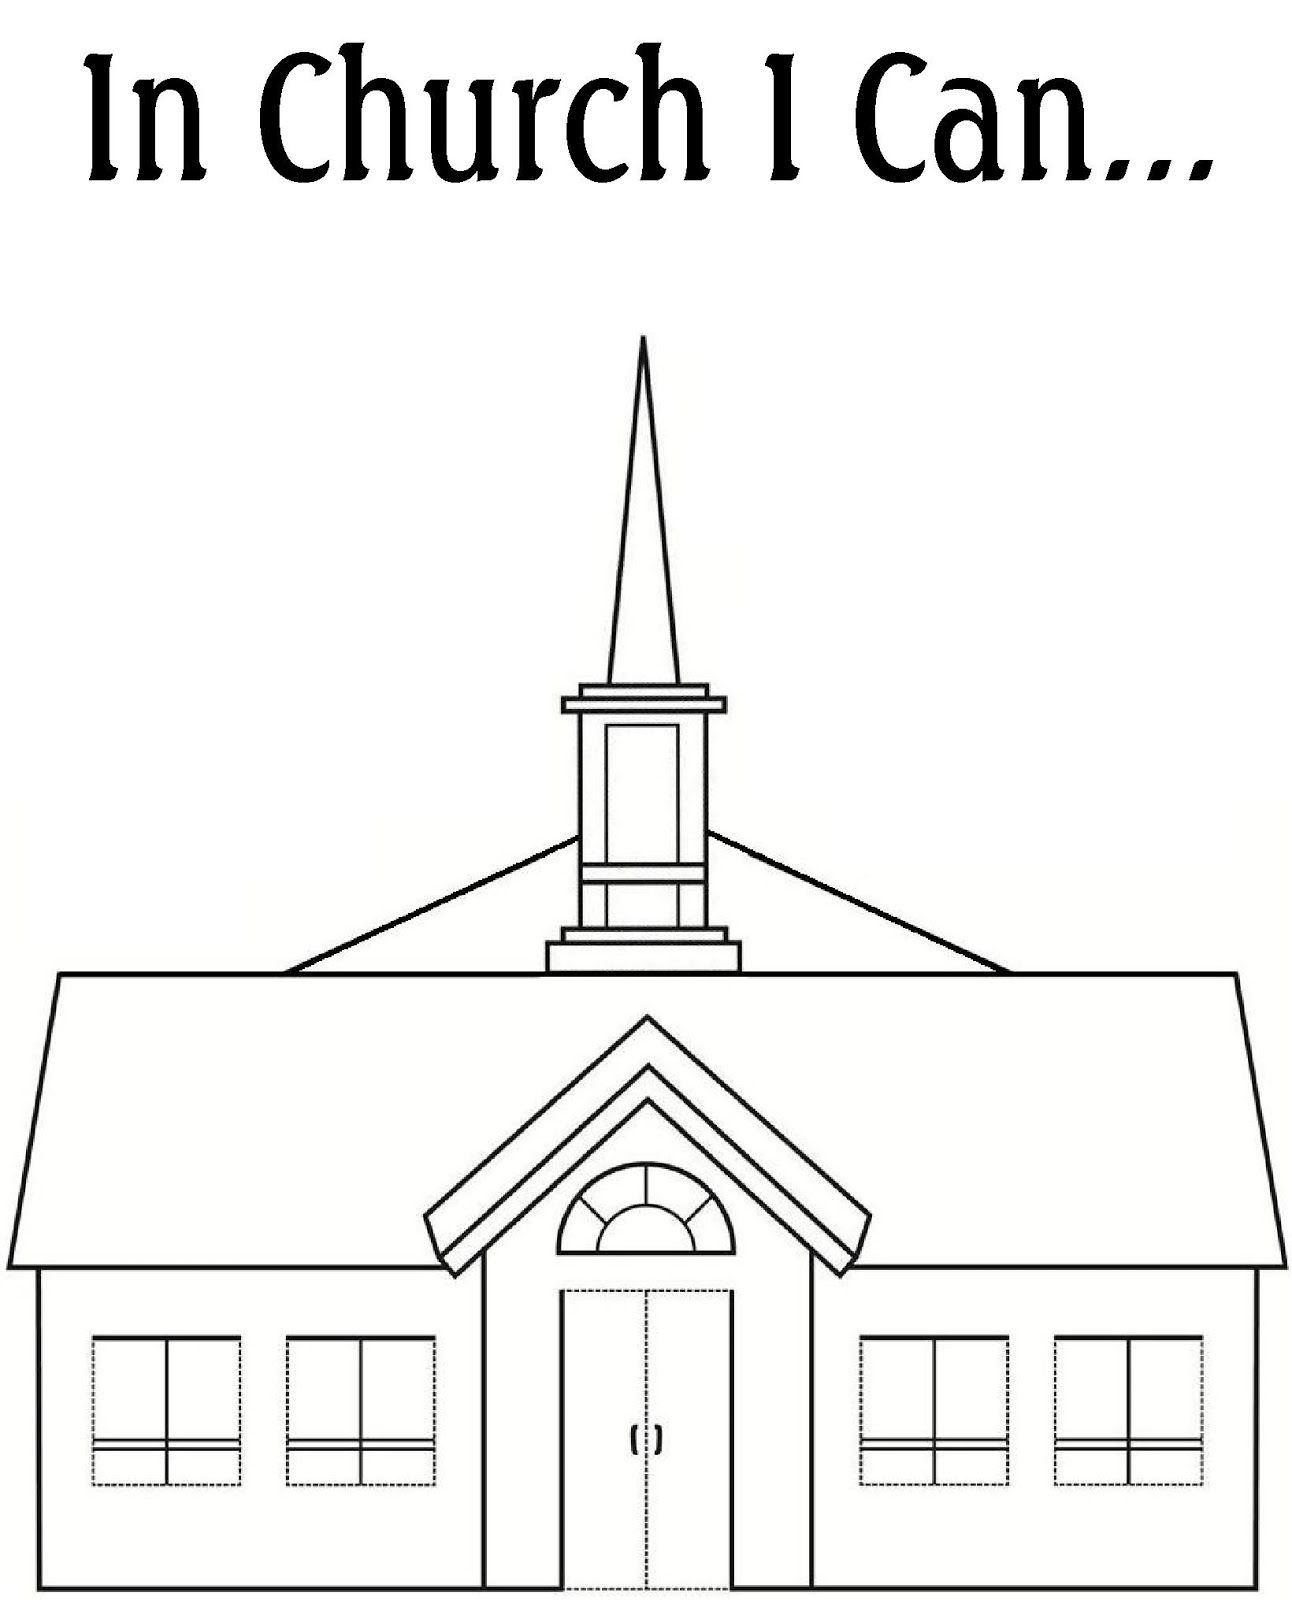 Lds church clipart black and white 5 » Clipart Portal.